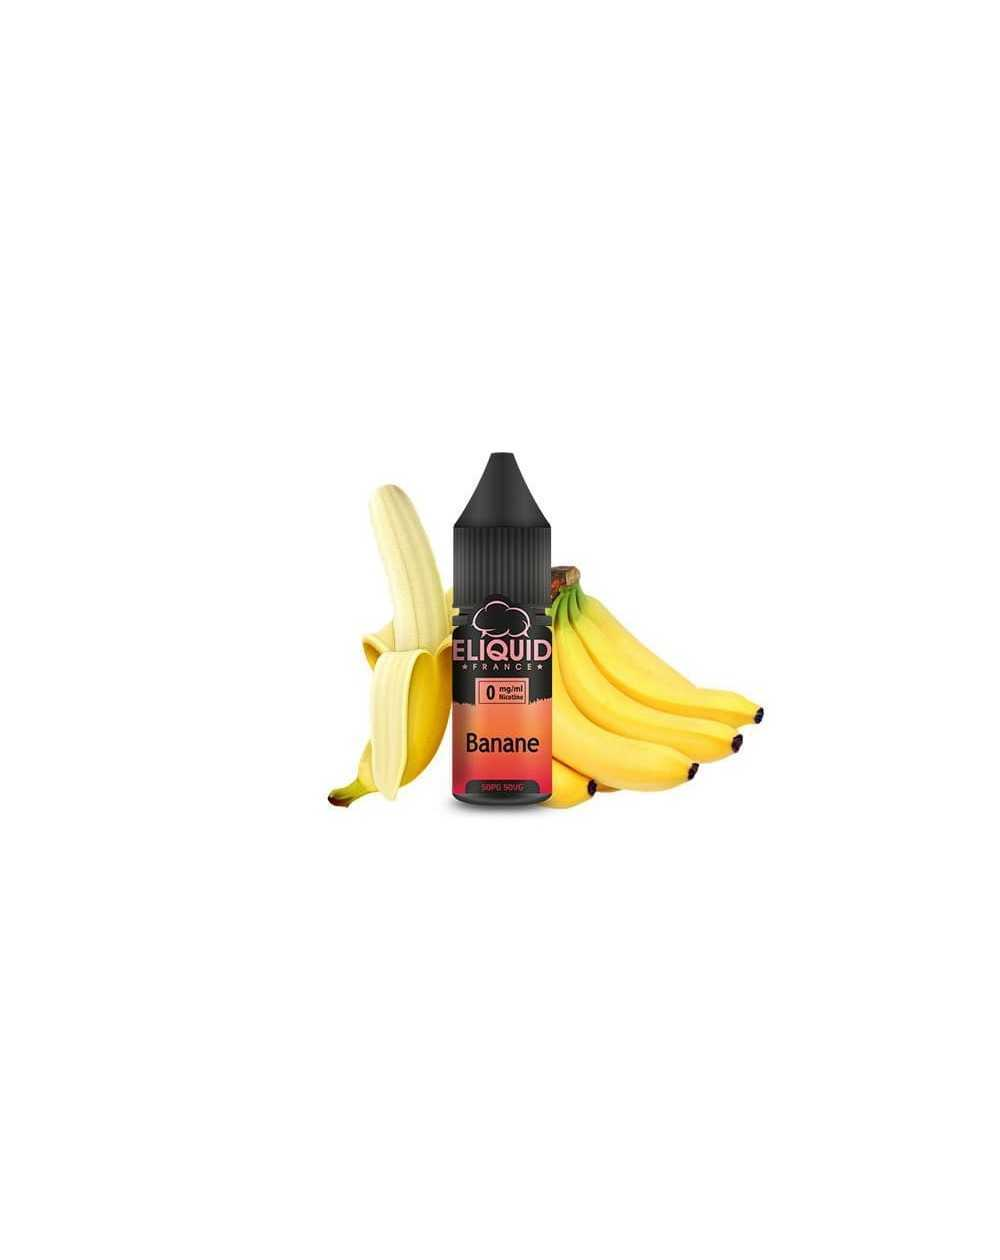 Eliquid Banane 10ml - Eliquid France-1